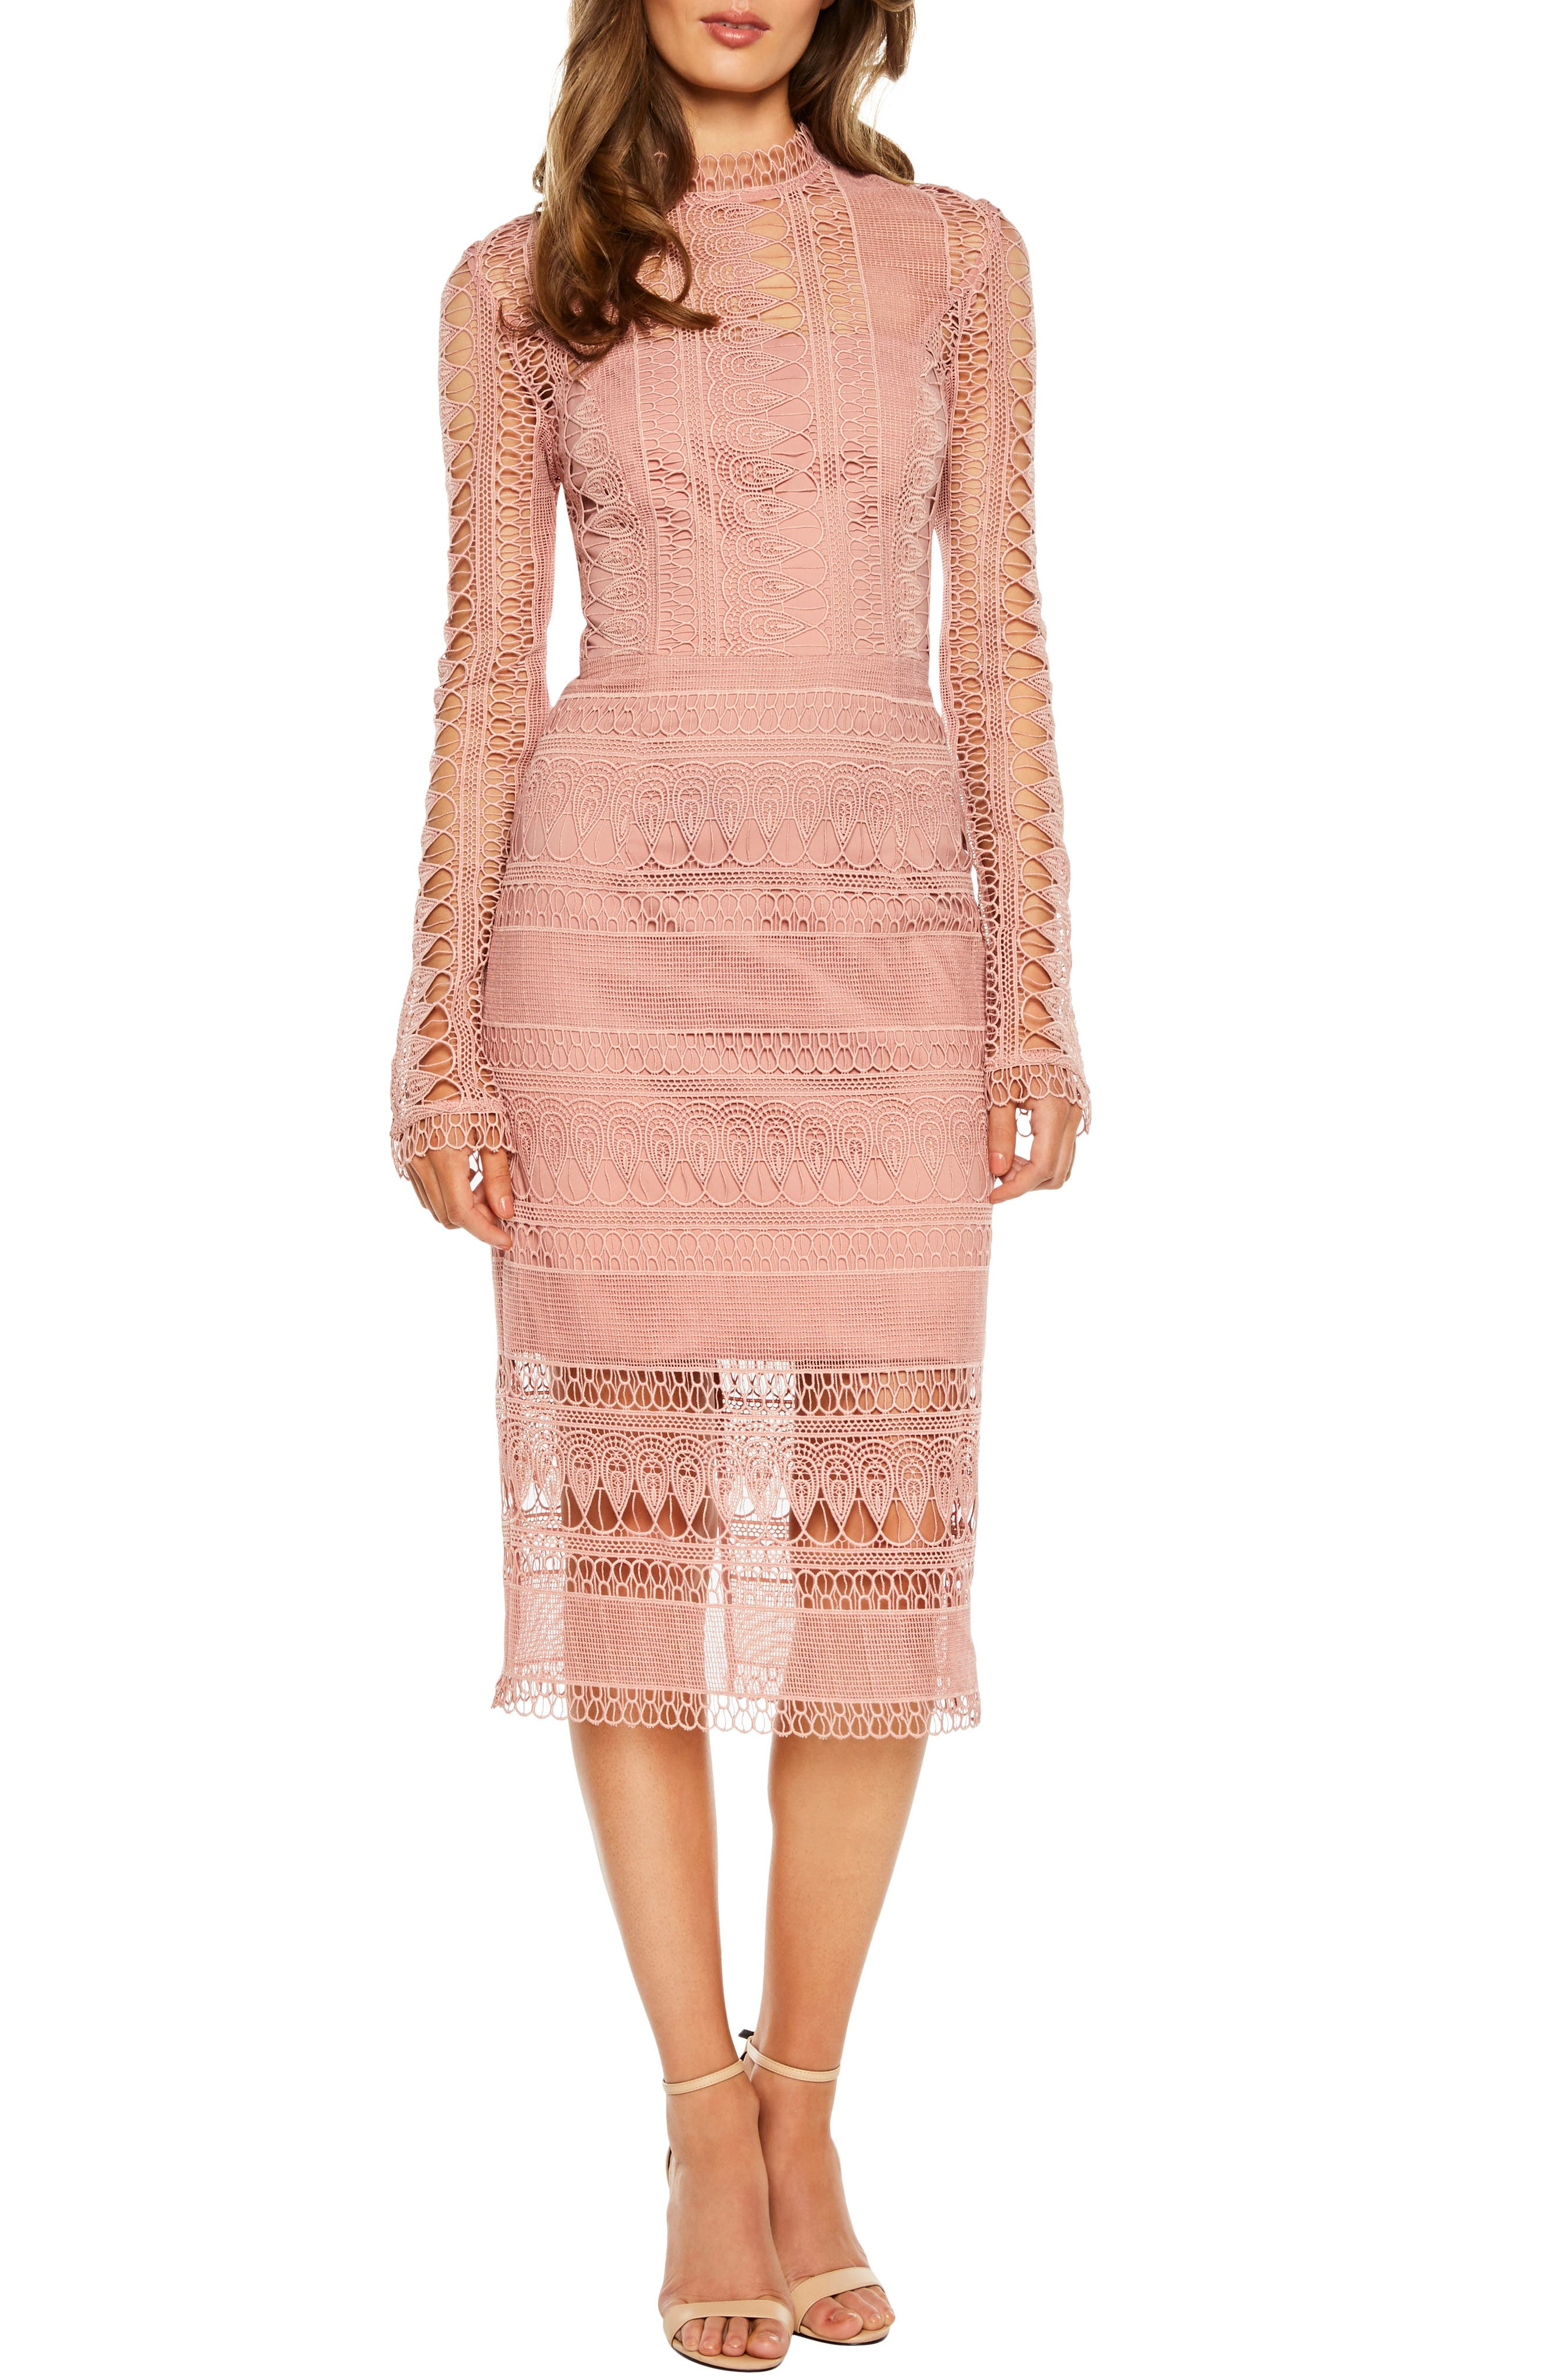 Mariana Lace Dress in Vintage Rose